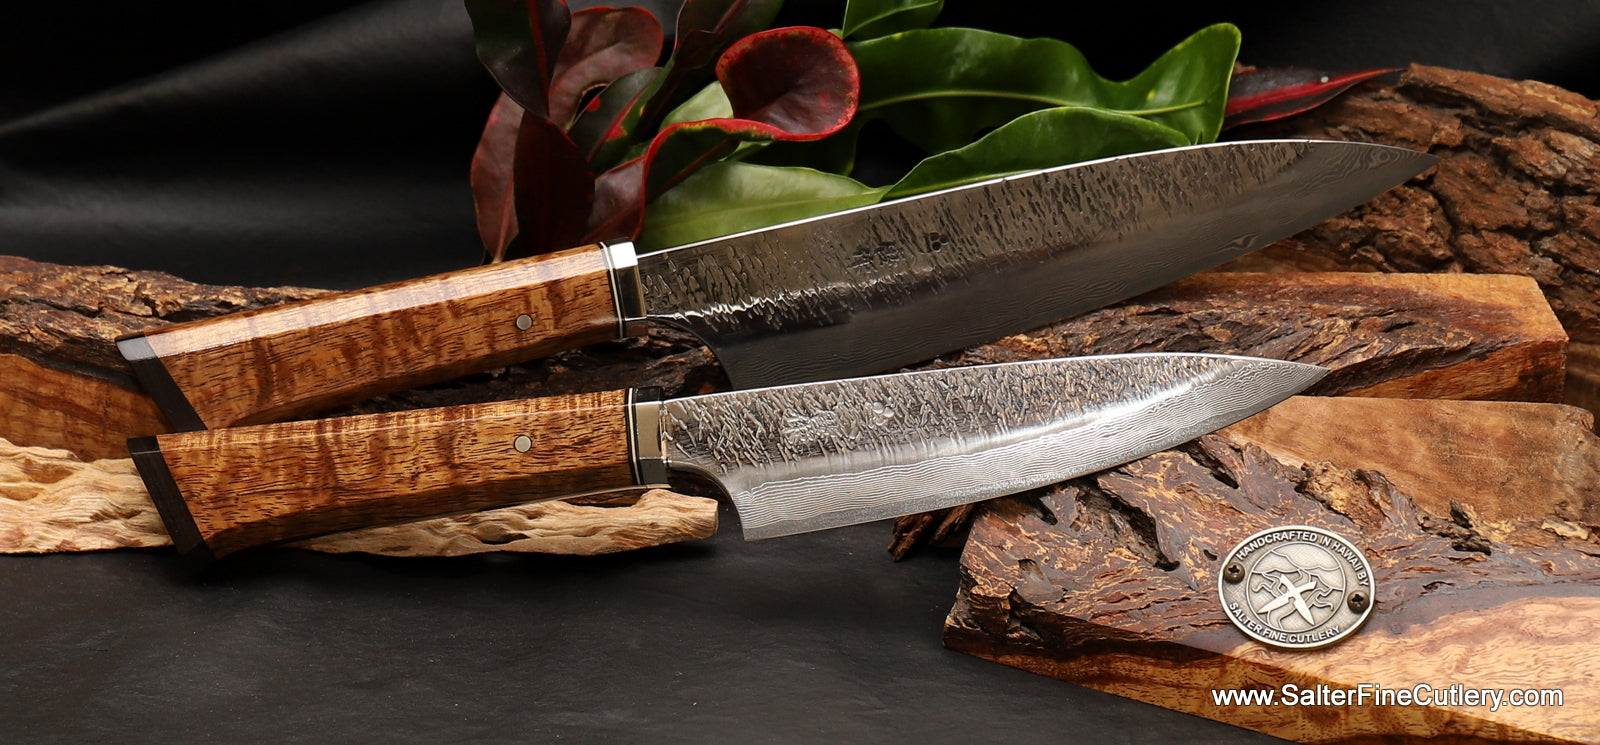 2-pc handmade custom raptor design chef knife set highest quality chef knives from Salter Fine Cutlery